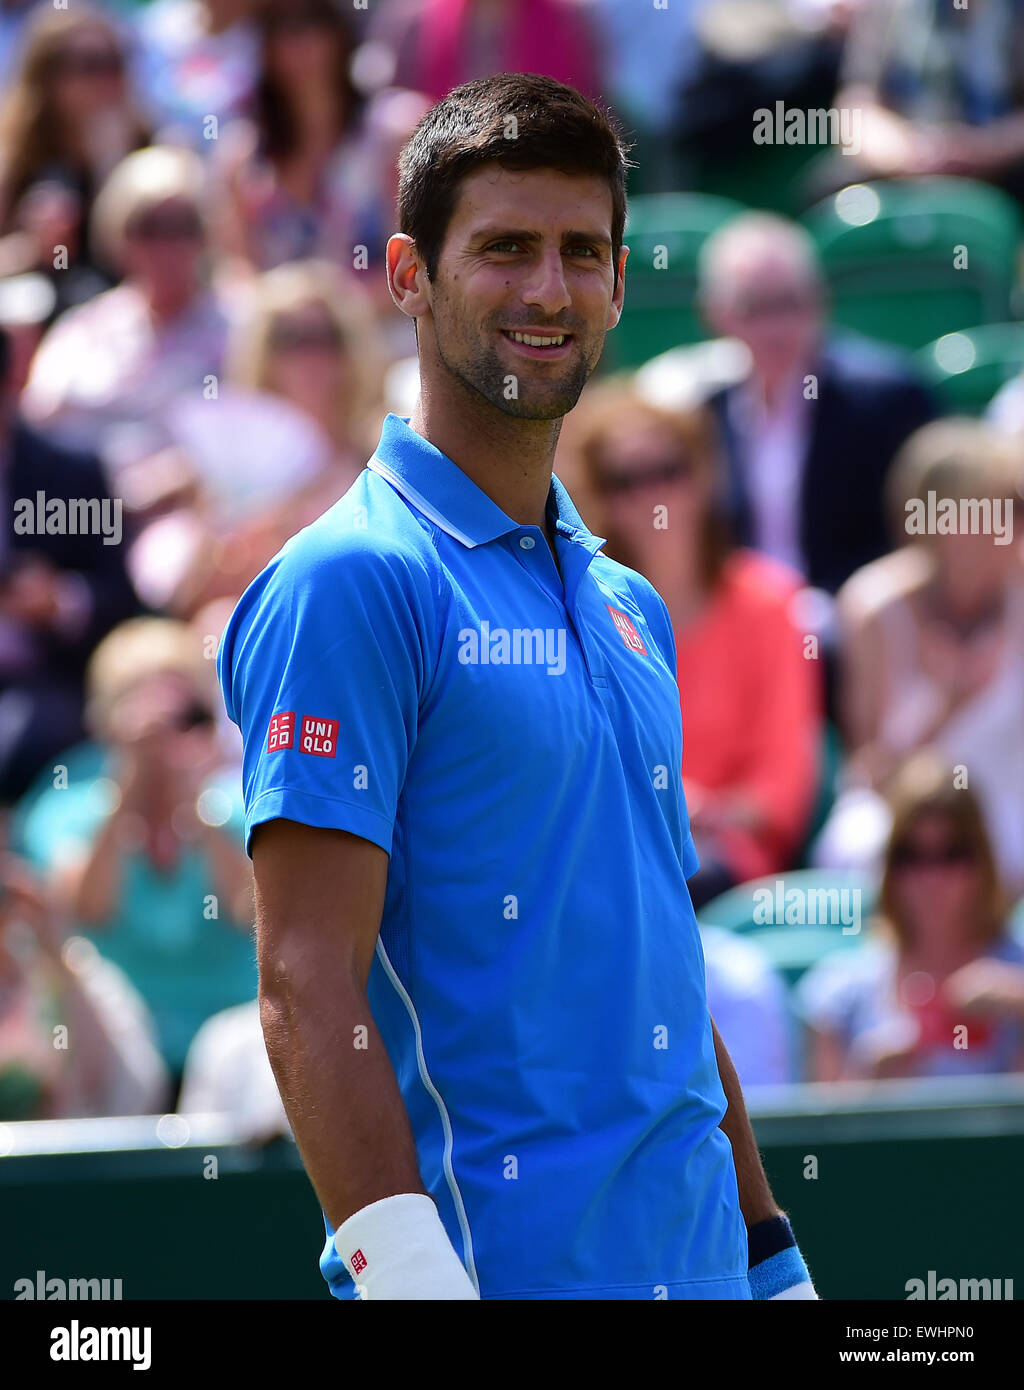 Slough, Berkshire, UK. 26th June, 2015. The Boodles Tennis Tournament. Novak Djokovic versus Alexander Zverev Credit: - Stock Image